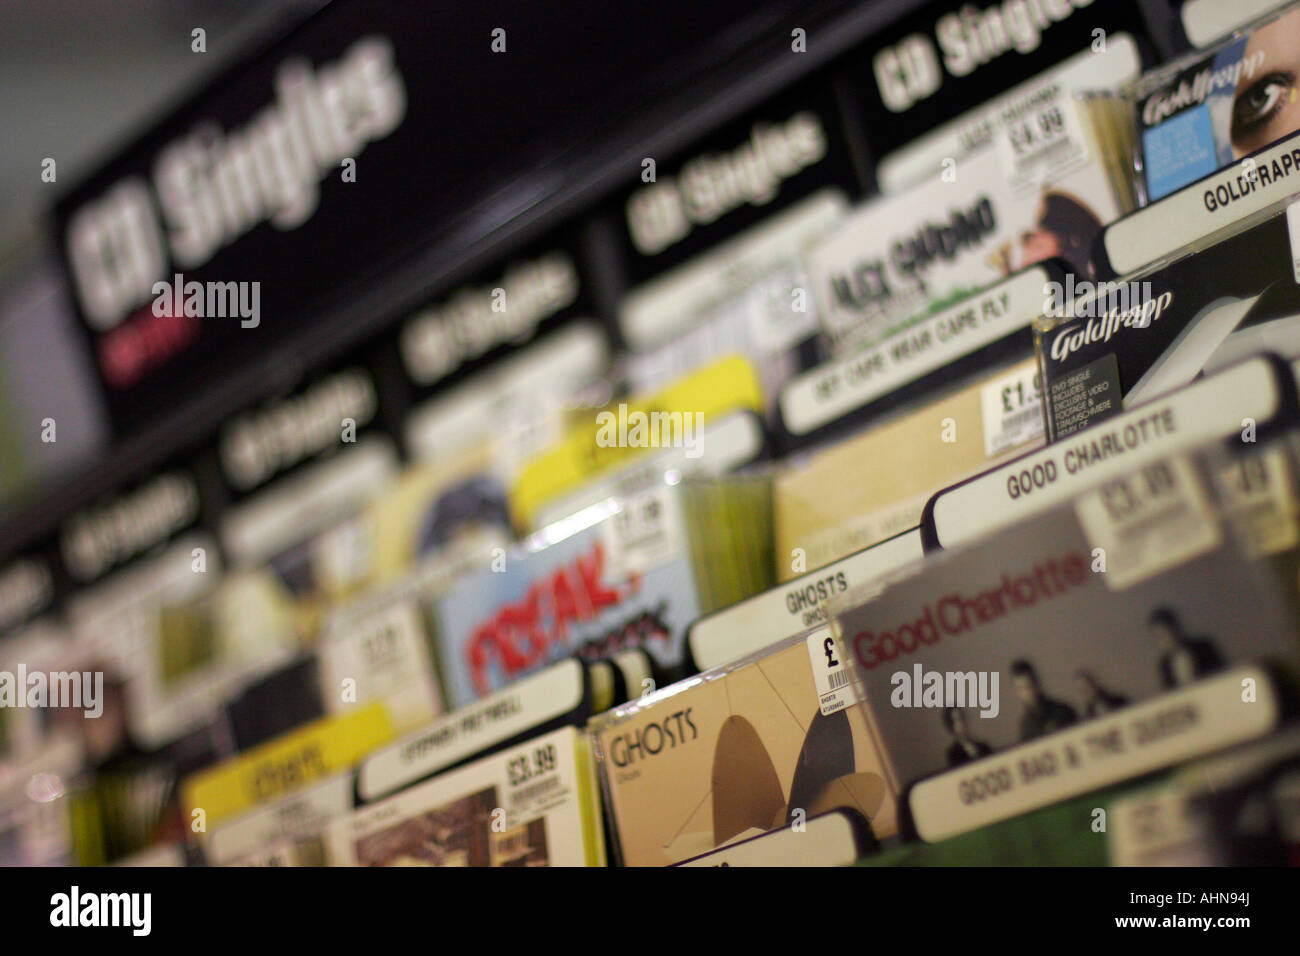 CD singles forsale in HMV Oxford Street London - Stock Image